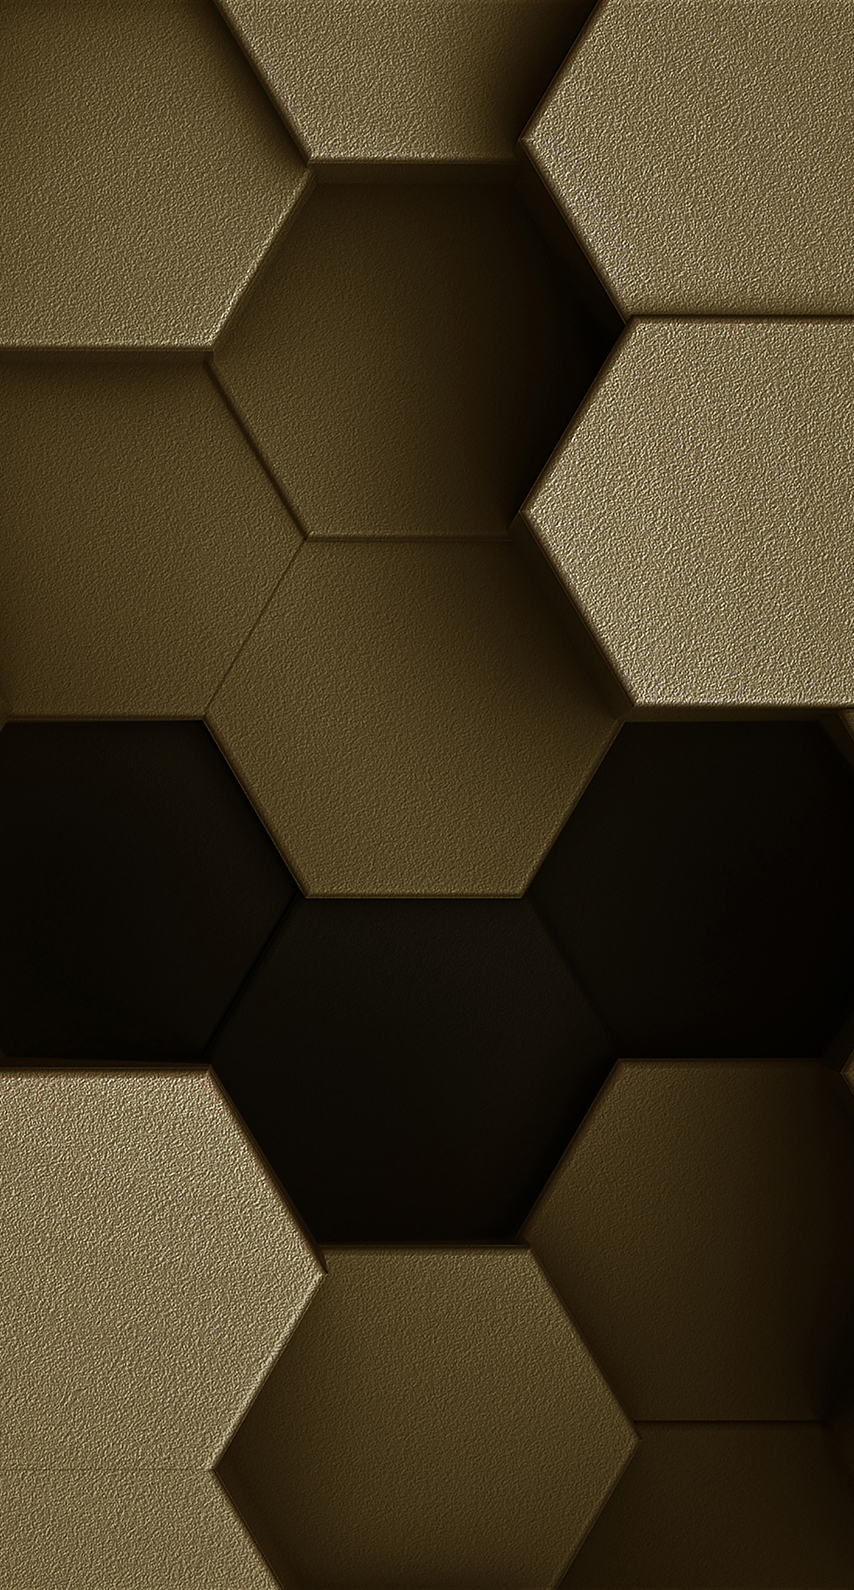 hexagon, honeycomb, cellular telephone, honey, proportion